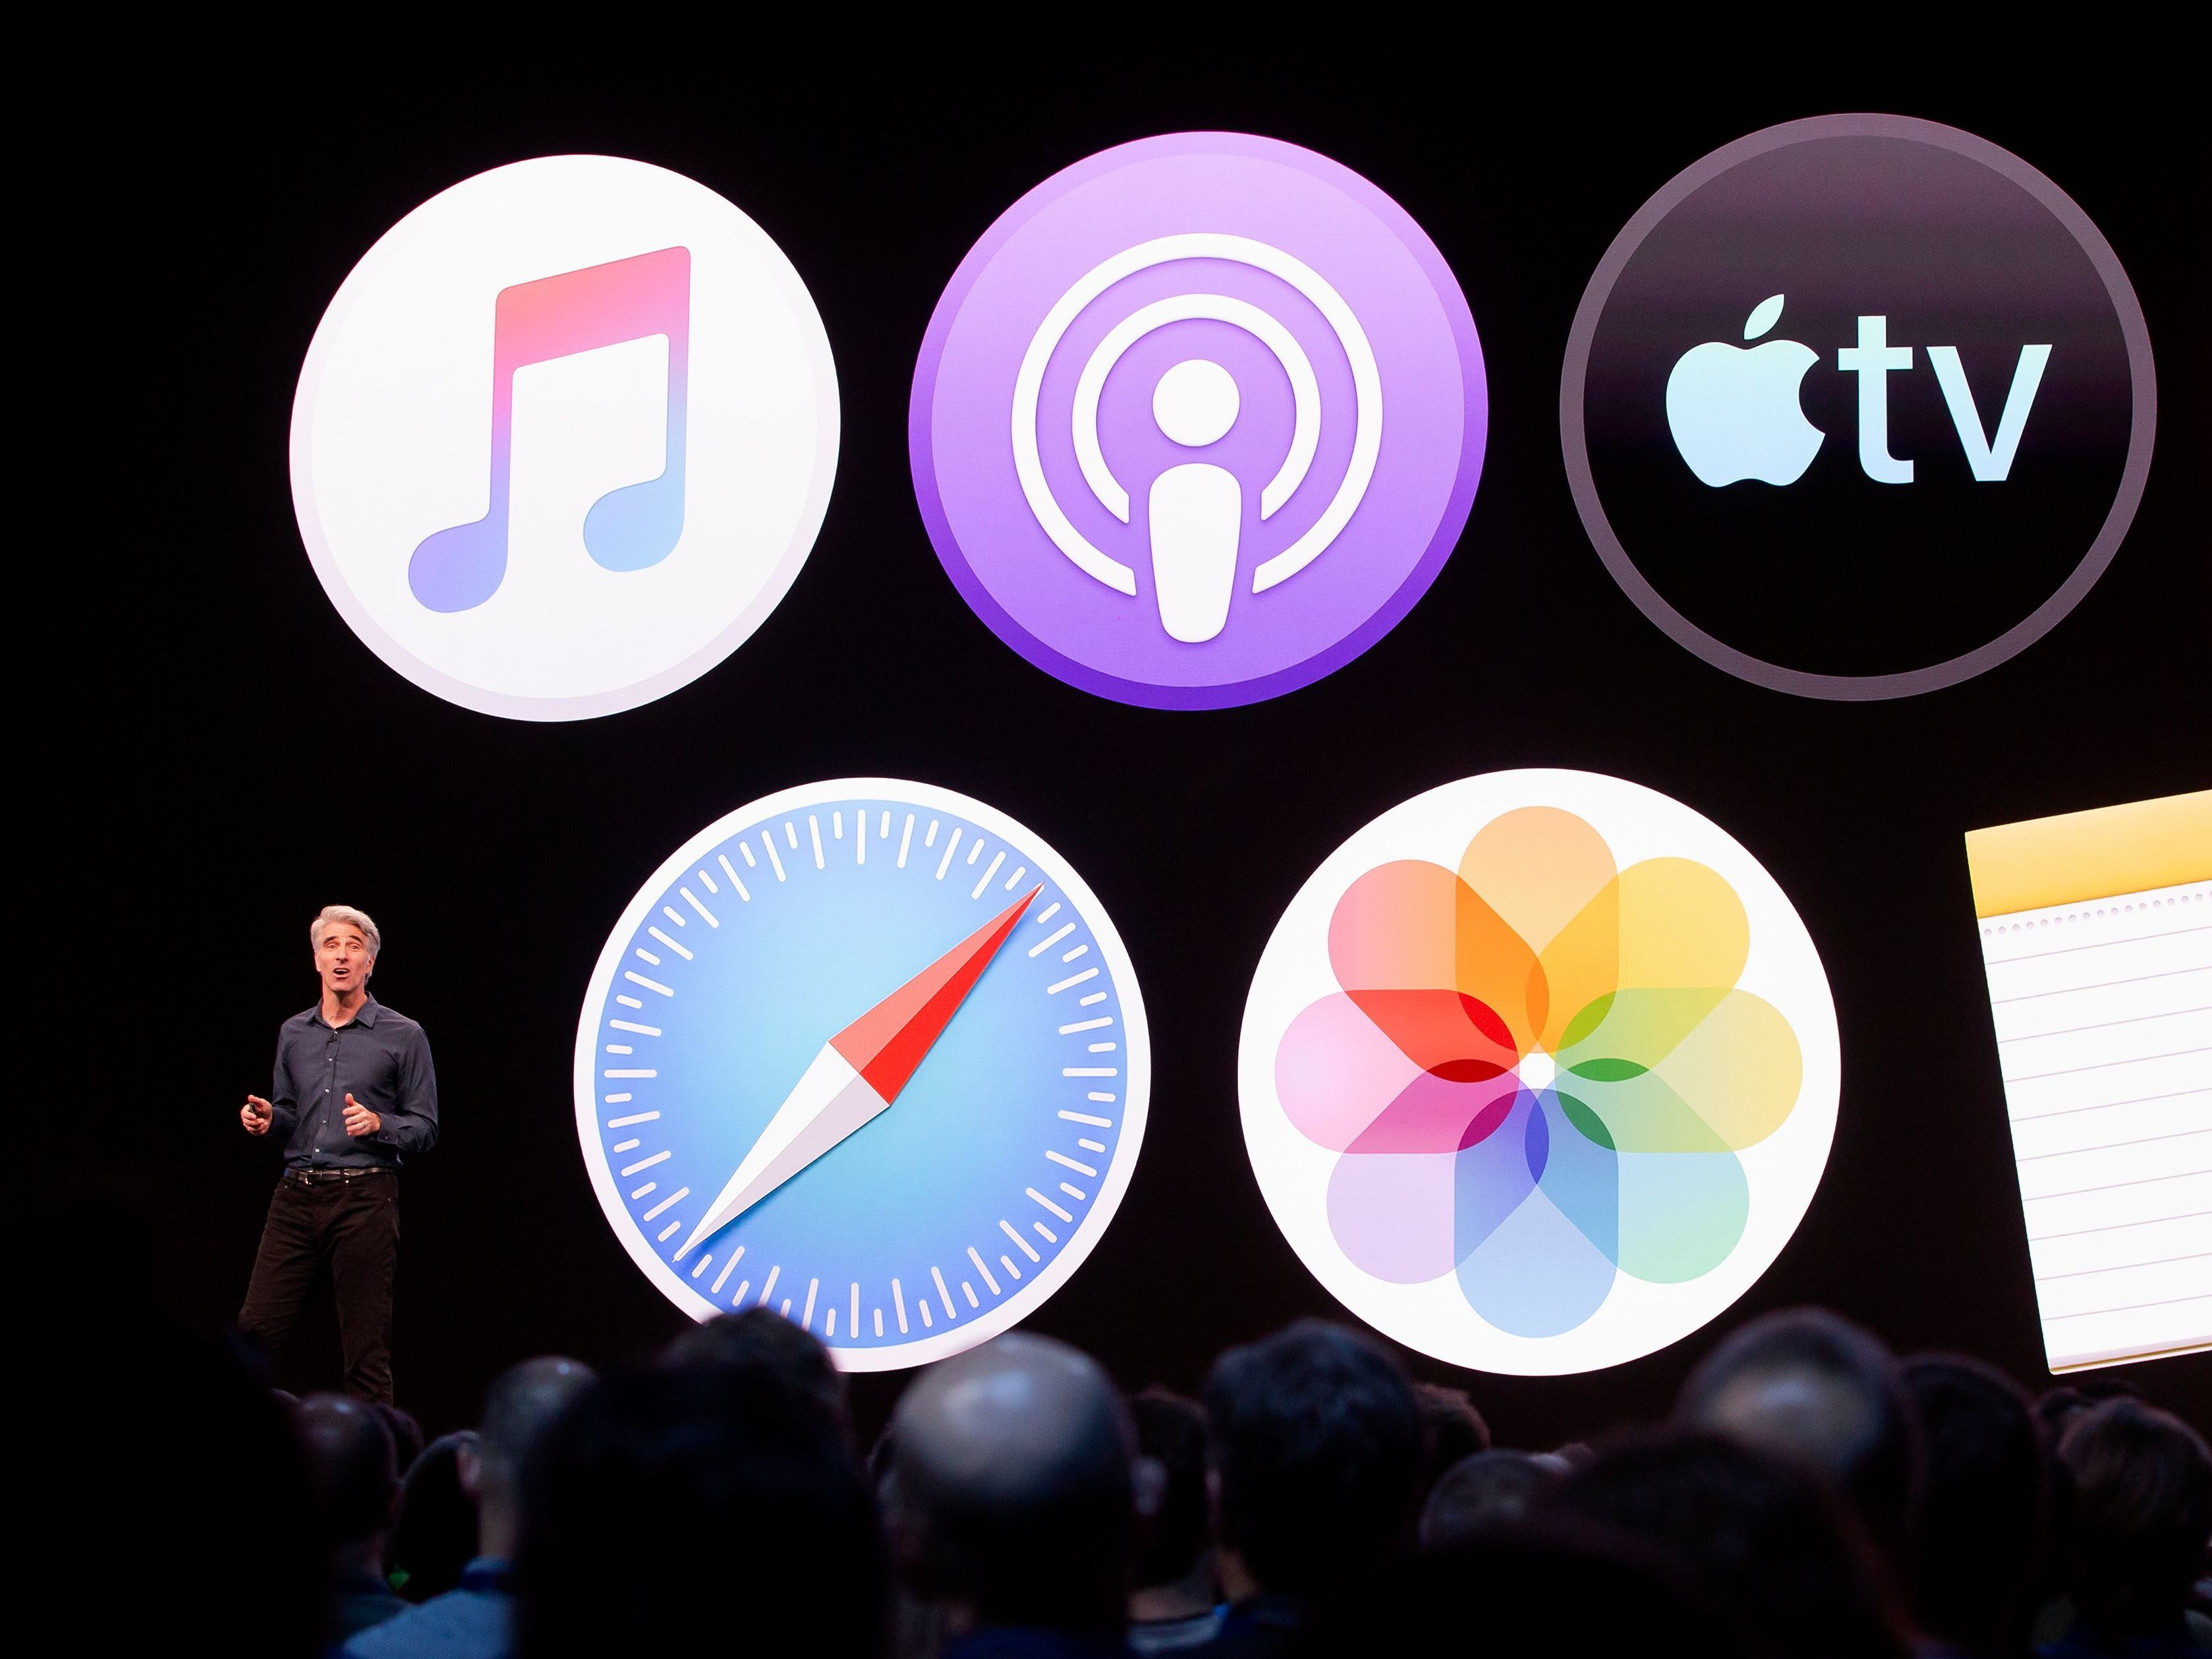 Weekly Wrap: Government Takes On Big Tech, What 'Intersectionality' Means, RIP iTunes